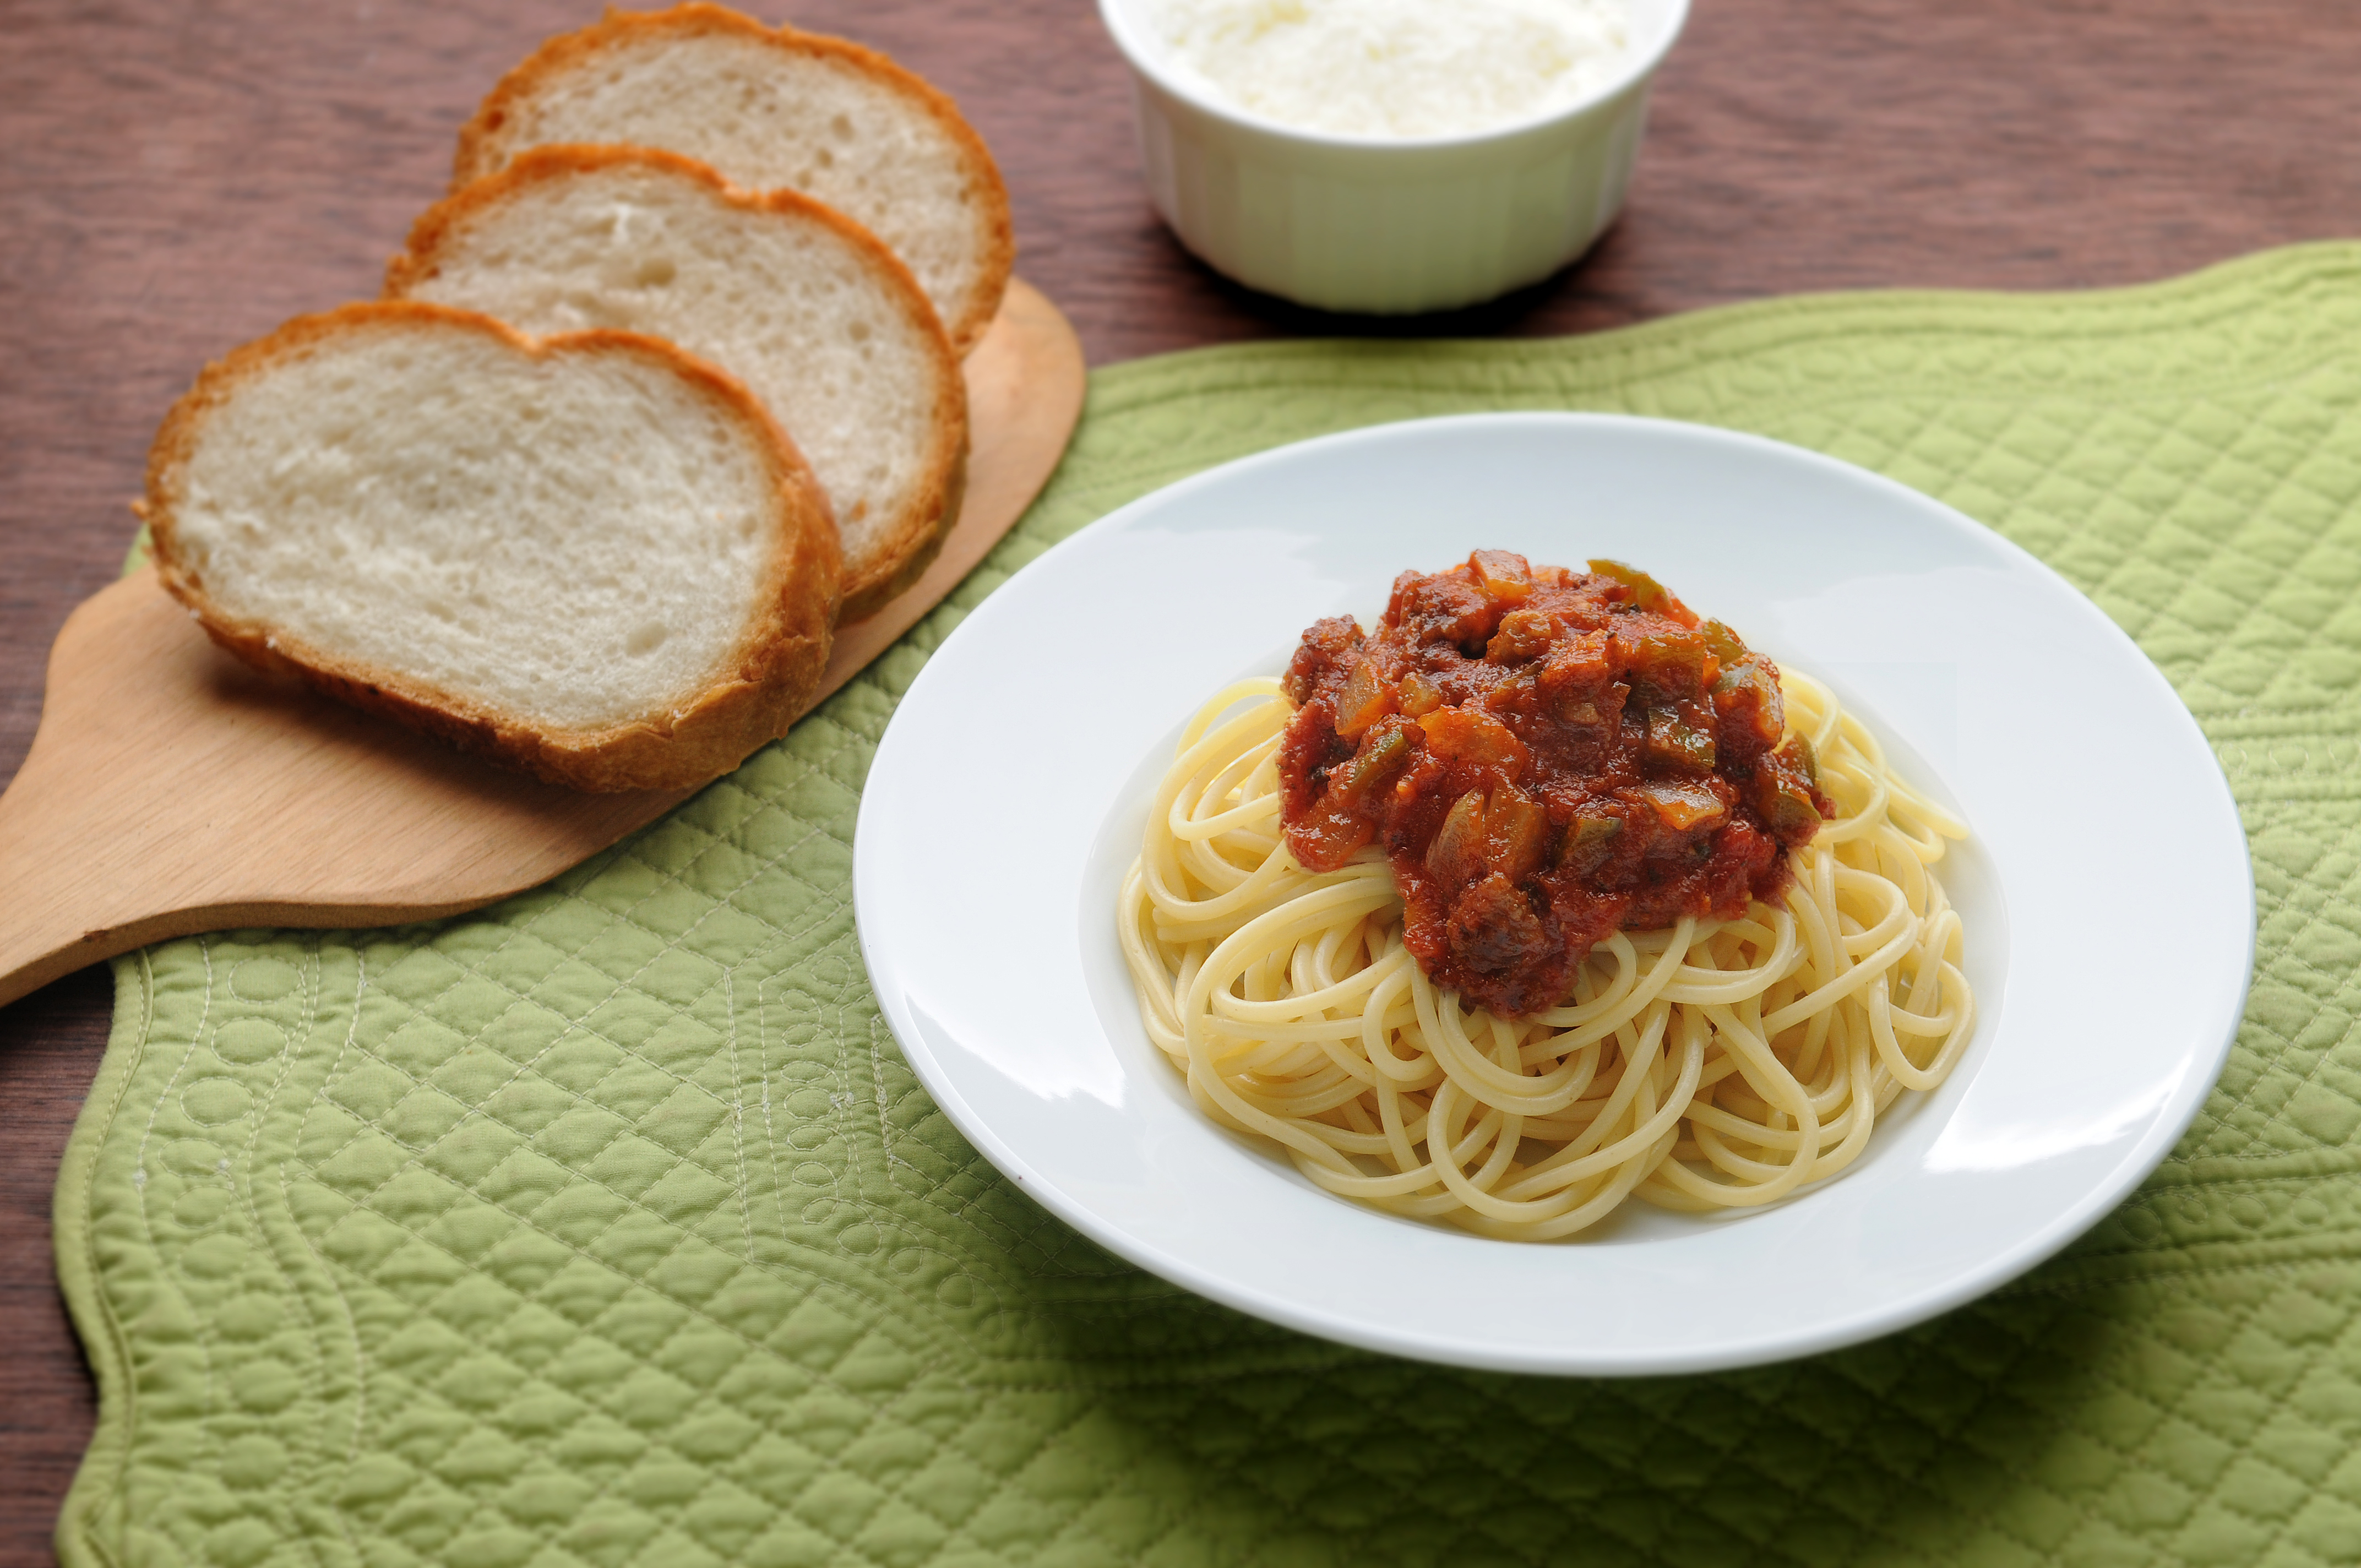 Spaghetti with Italian red sauce with onions and bell peppers and a side of bread